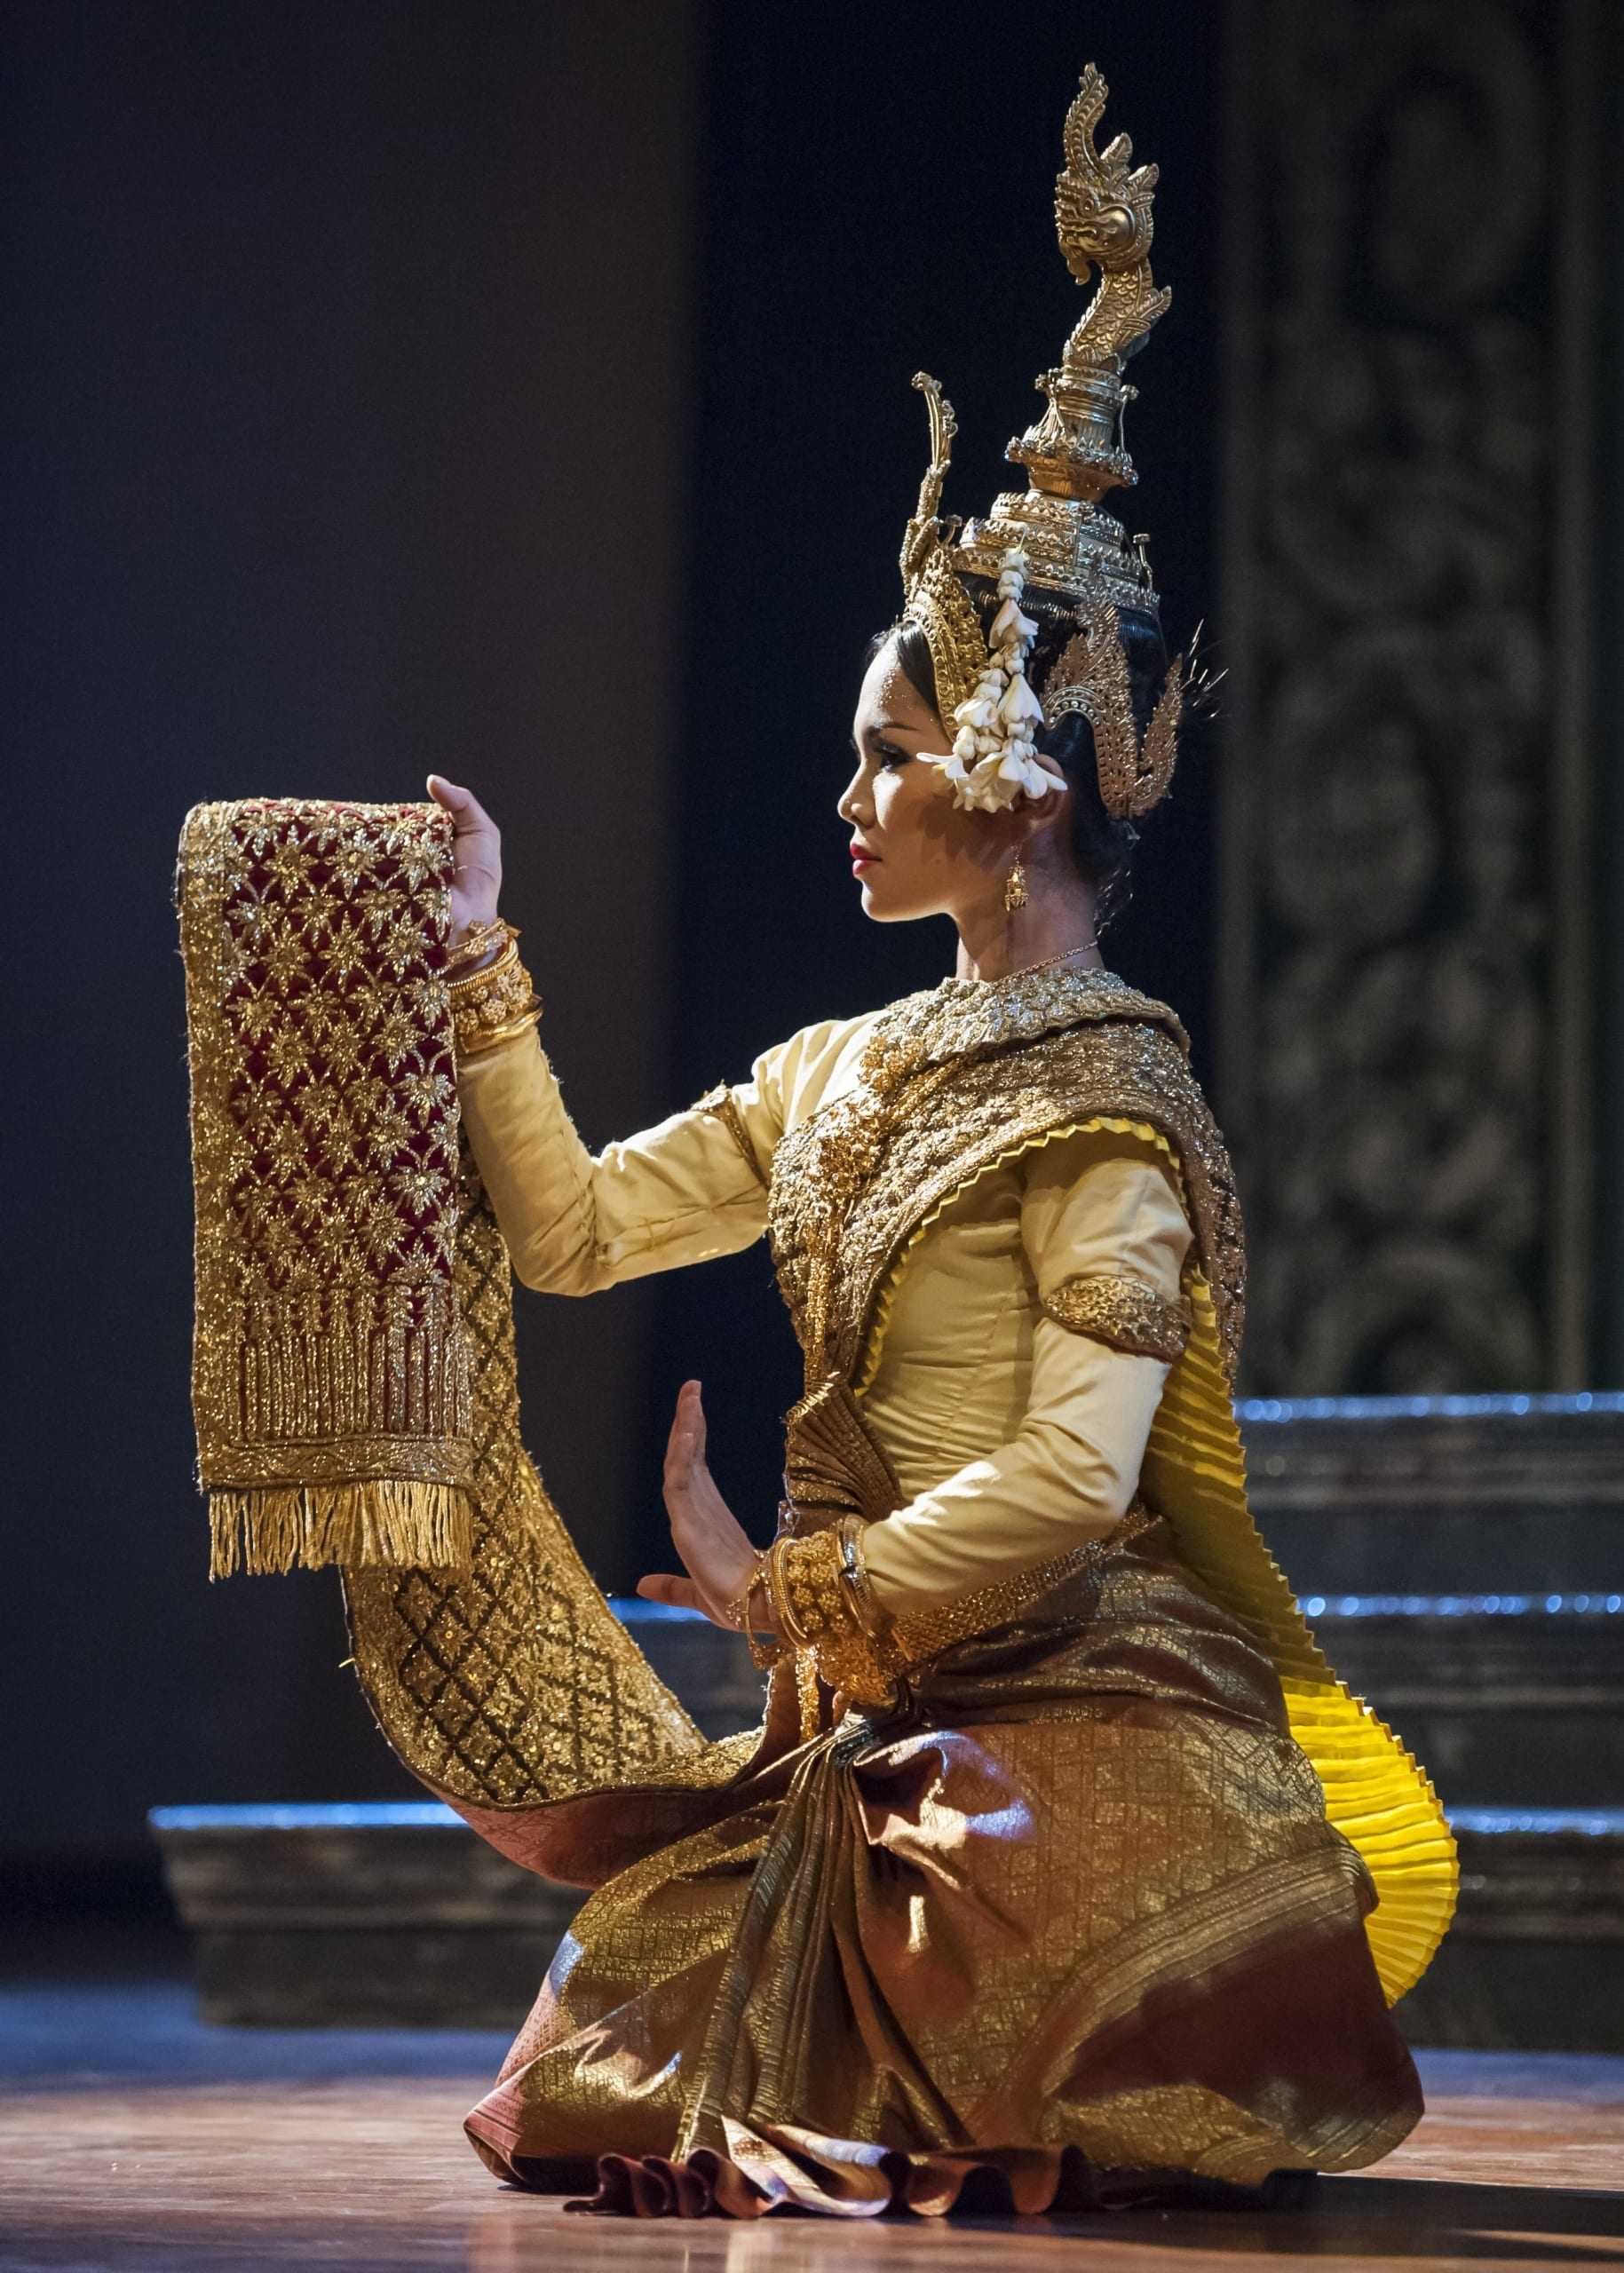 Color photograph of a dancer dressed in glittering gold-embroidered costume, crouching down and holding up a scarf. She wears a tall gold crown in the shape of an undulating serpent.